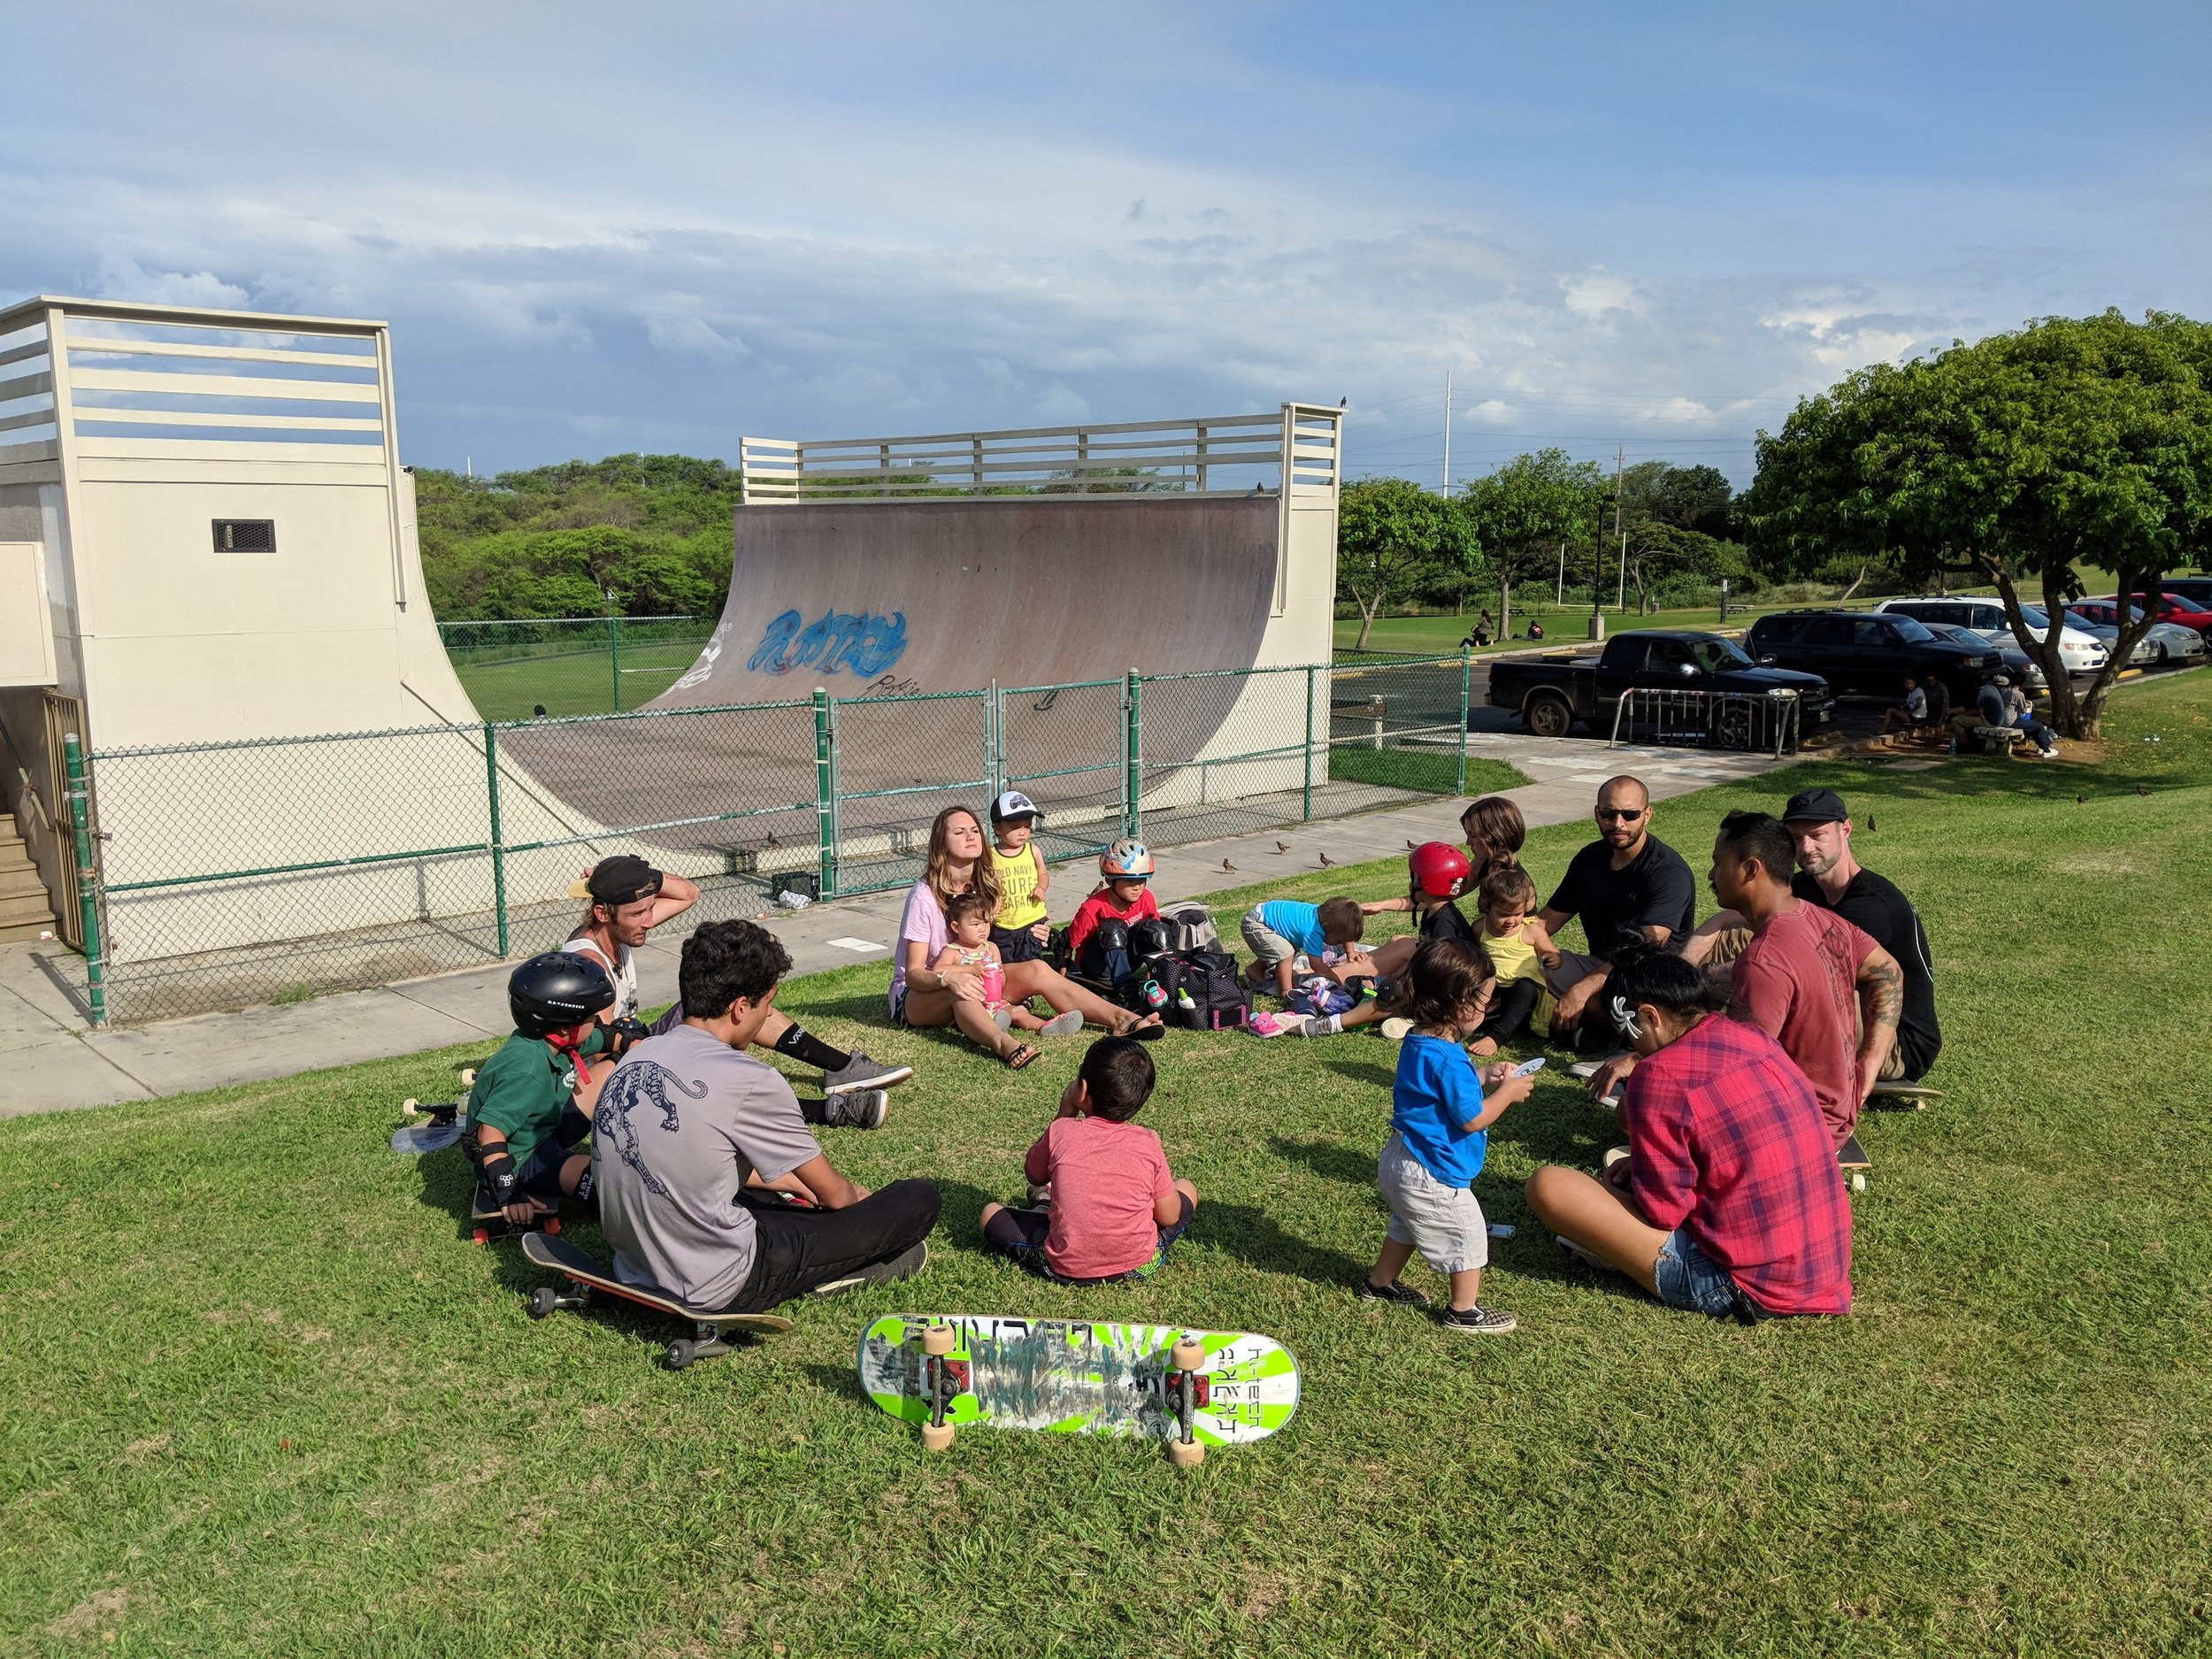 1L Life Group at Keopuolani Park in Kahului last Wednesday Afternoon. Thankful to be #ShoulderToShoulder with leaders who #LiveOneLove and also thankful to meet new friends at skateparks!